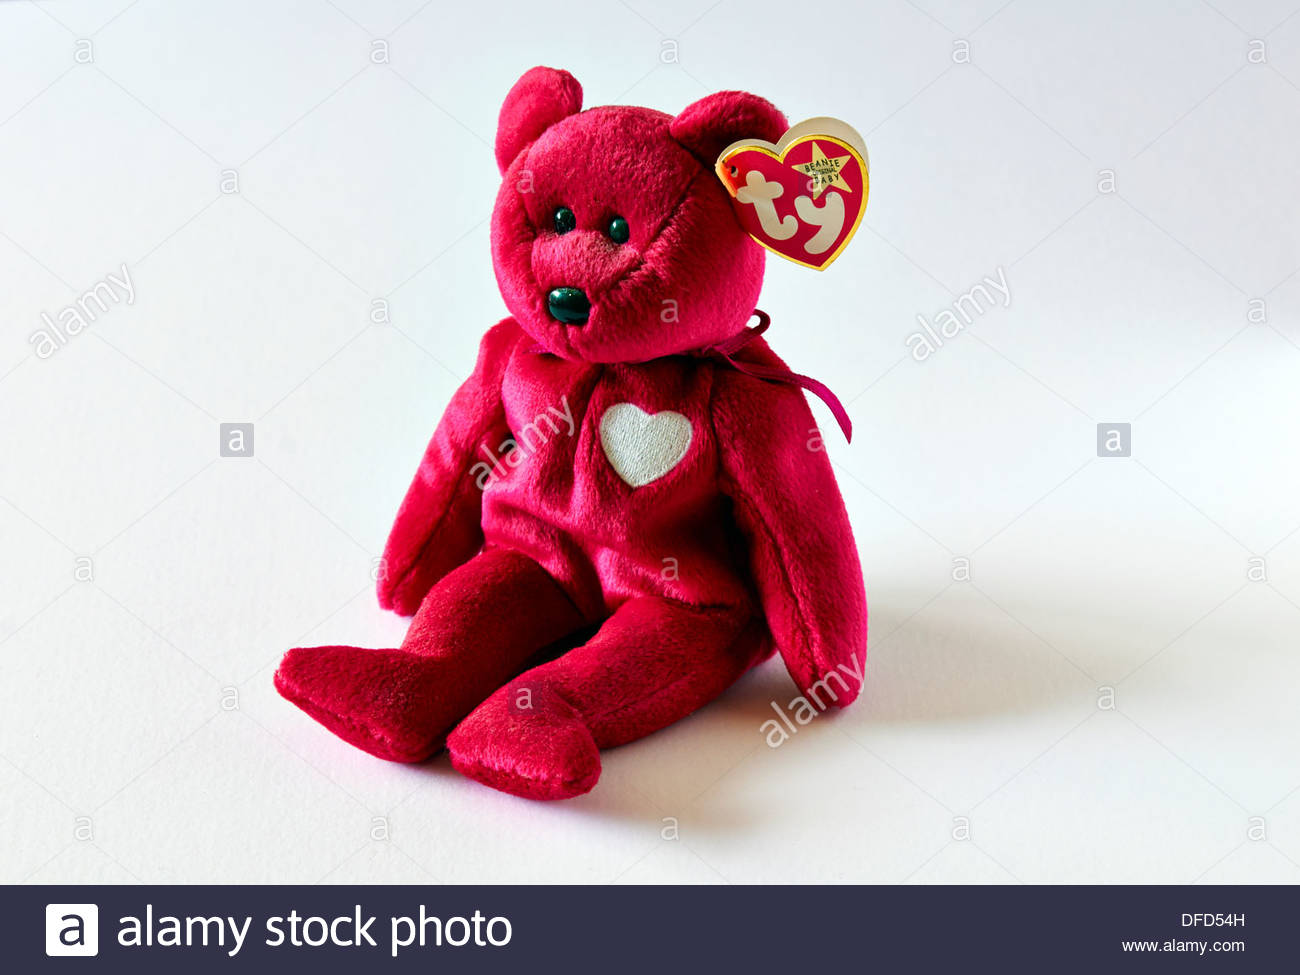 bd2882c36b2 red ty beanie baby teddy bear close up - Stock Image